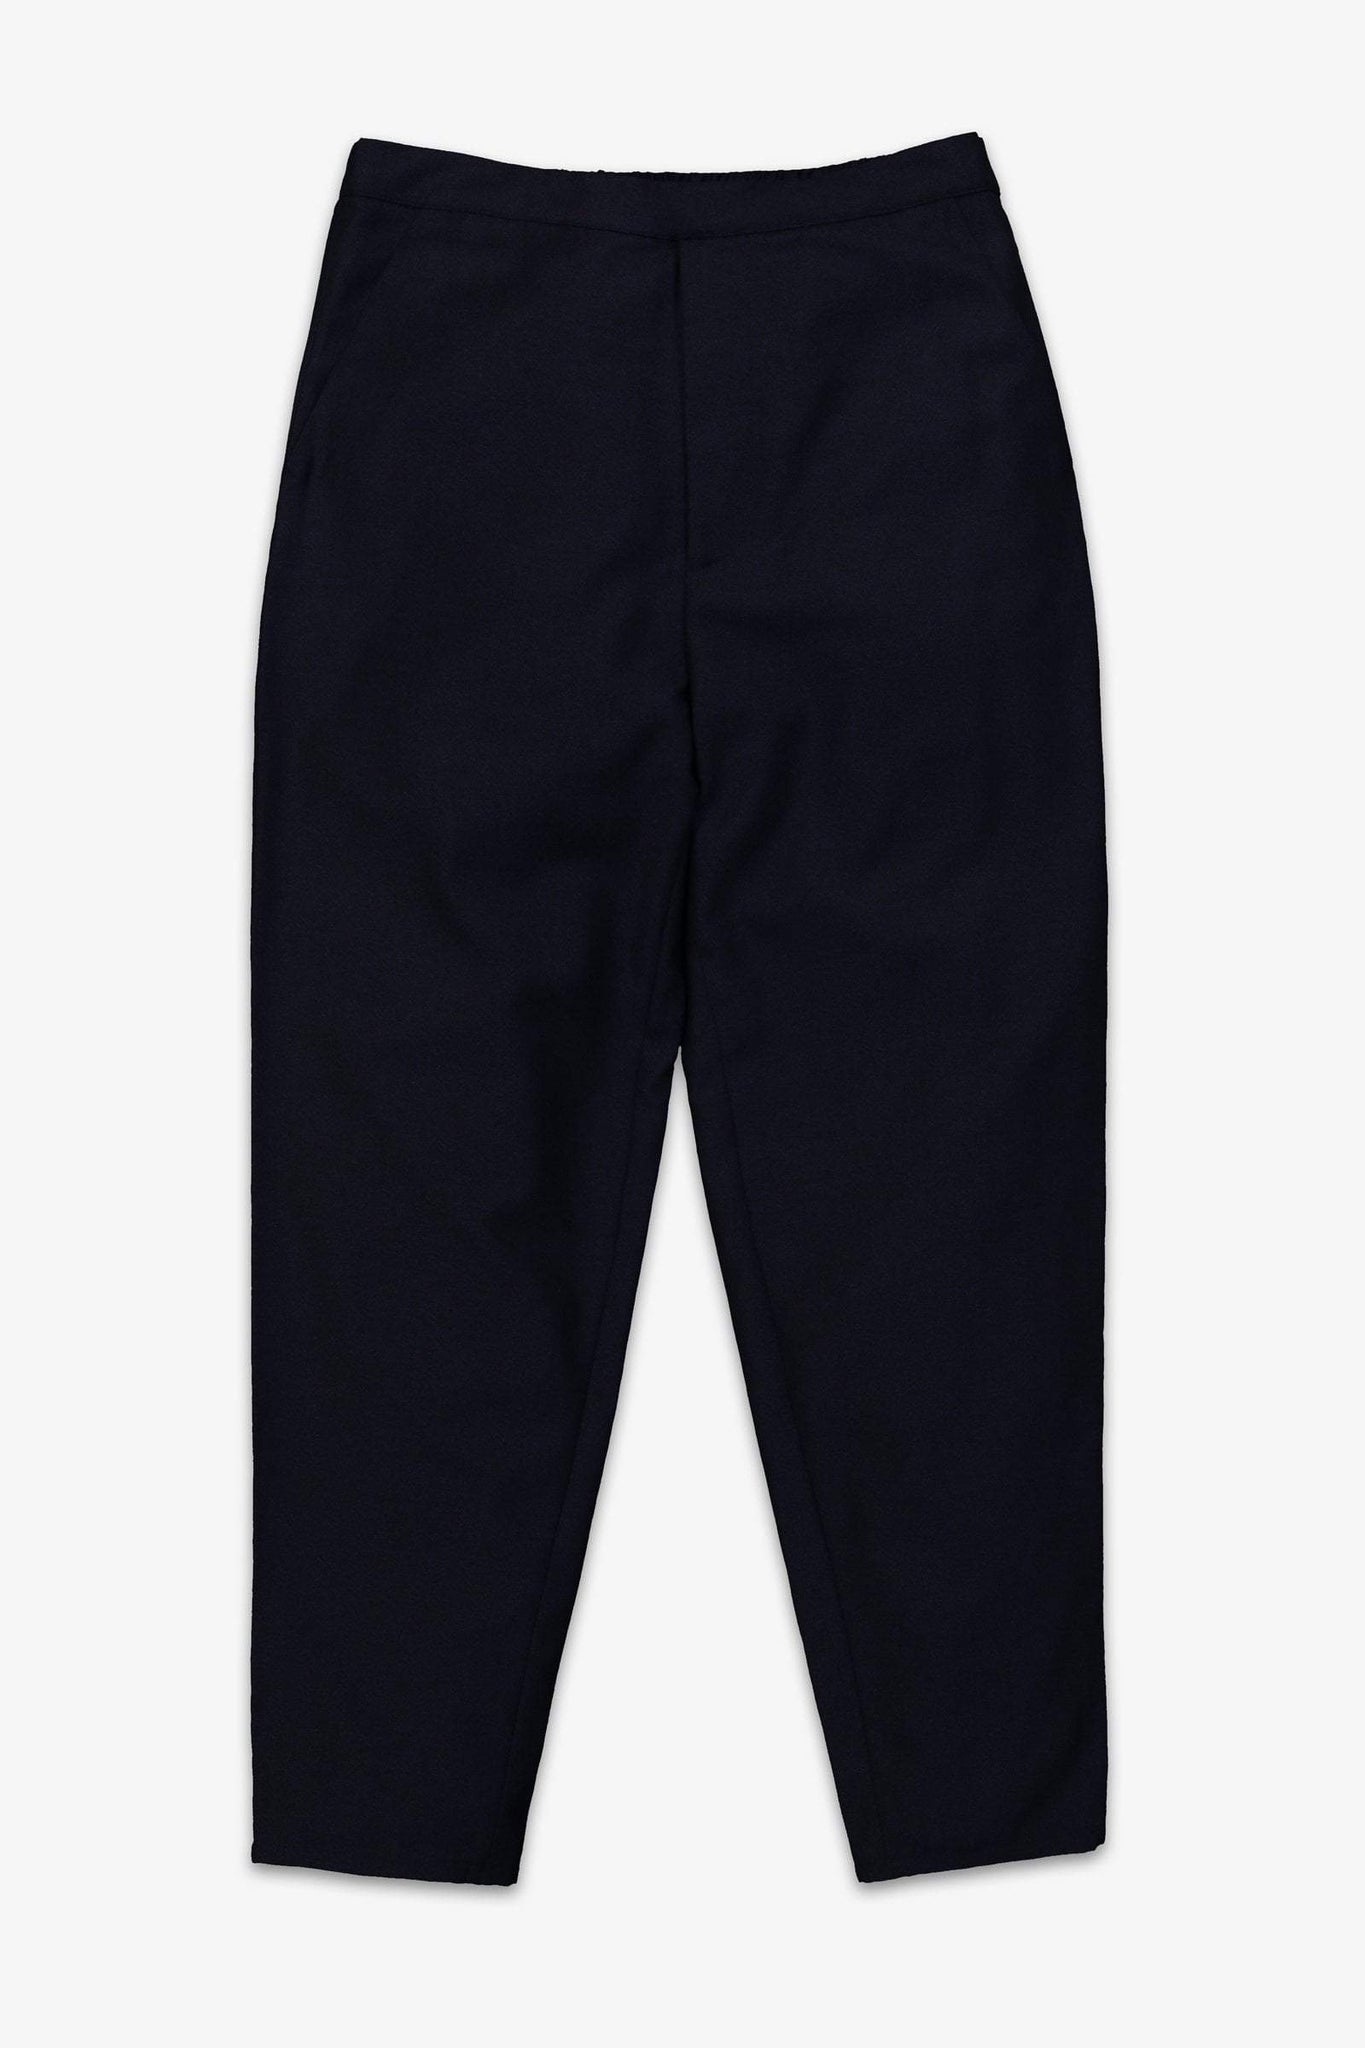 Pants Sudden – blue black